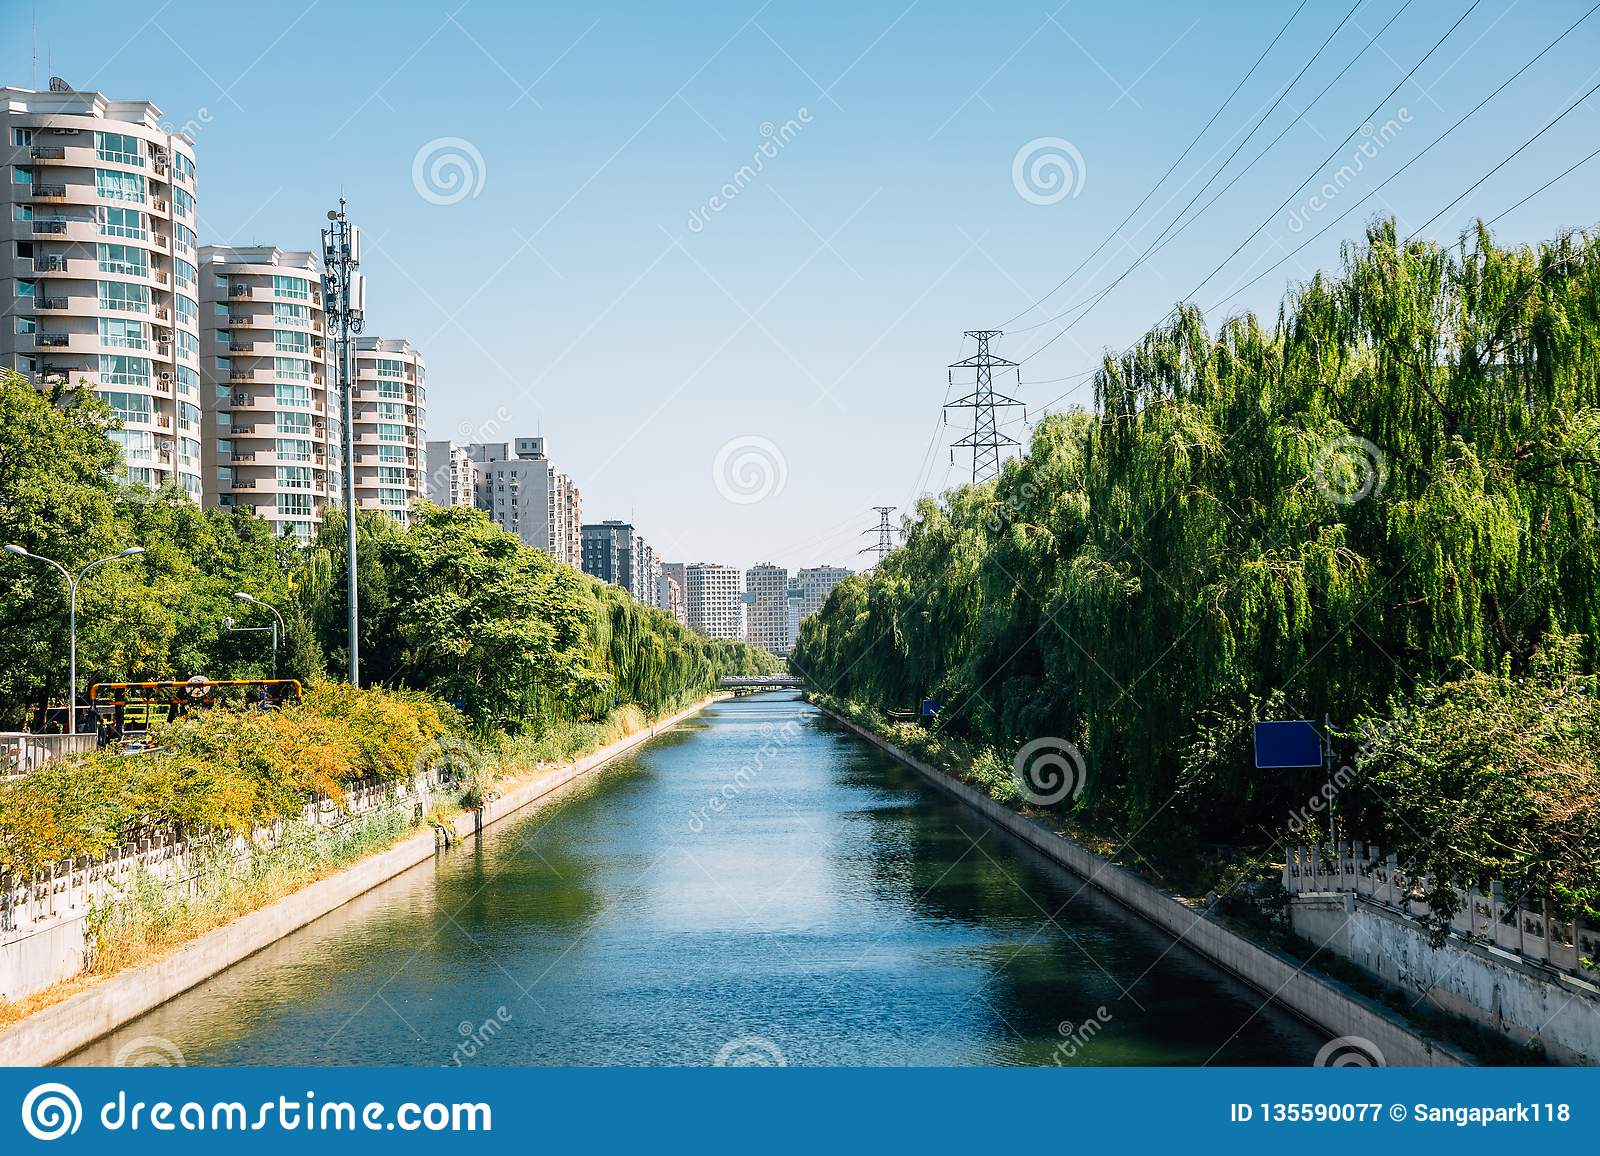 Modern apartment buildings and riverside park in Beijing, China